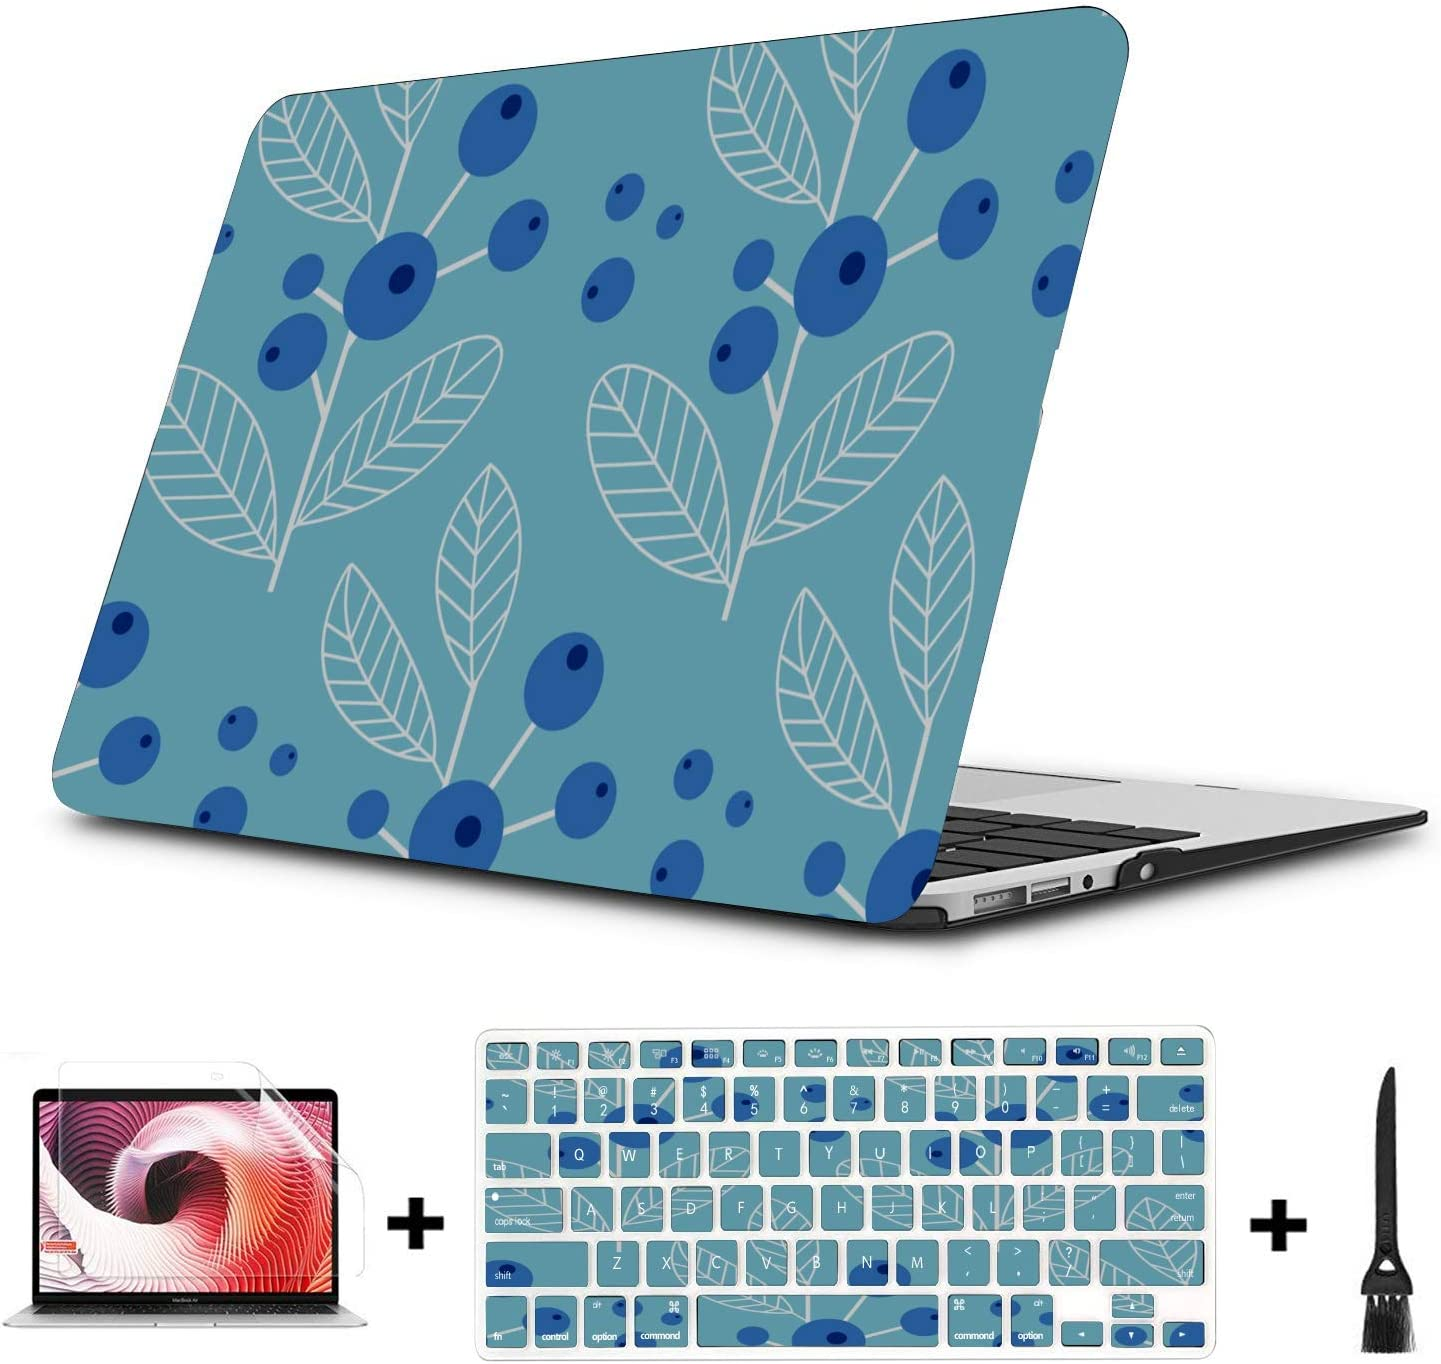 MacBook Air Cover Summer Sweet Sour Fruit Blueberry Plastic Hard Shell Compatible Mac Air 11 Pro 13 15 MacBook Pro Accessories Protection for MacBook 2016-2019 Version